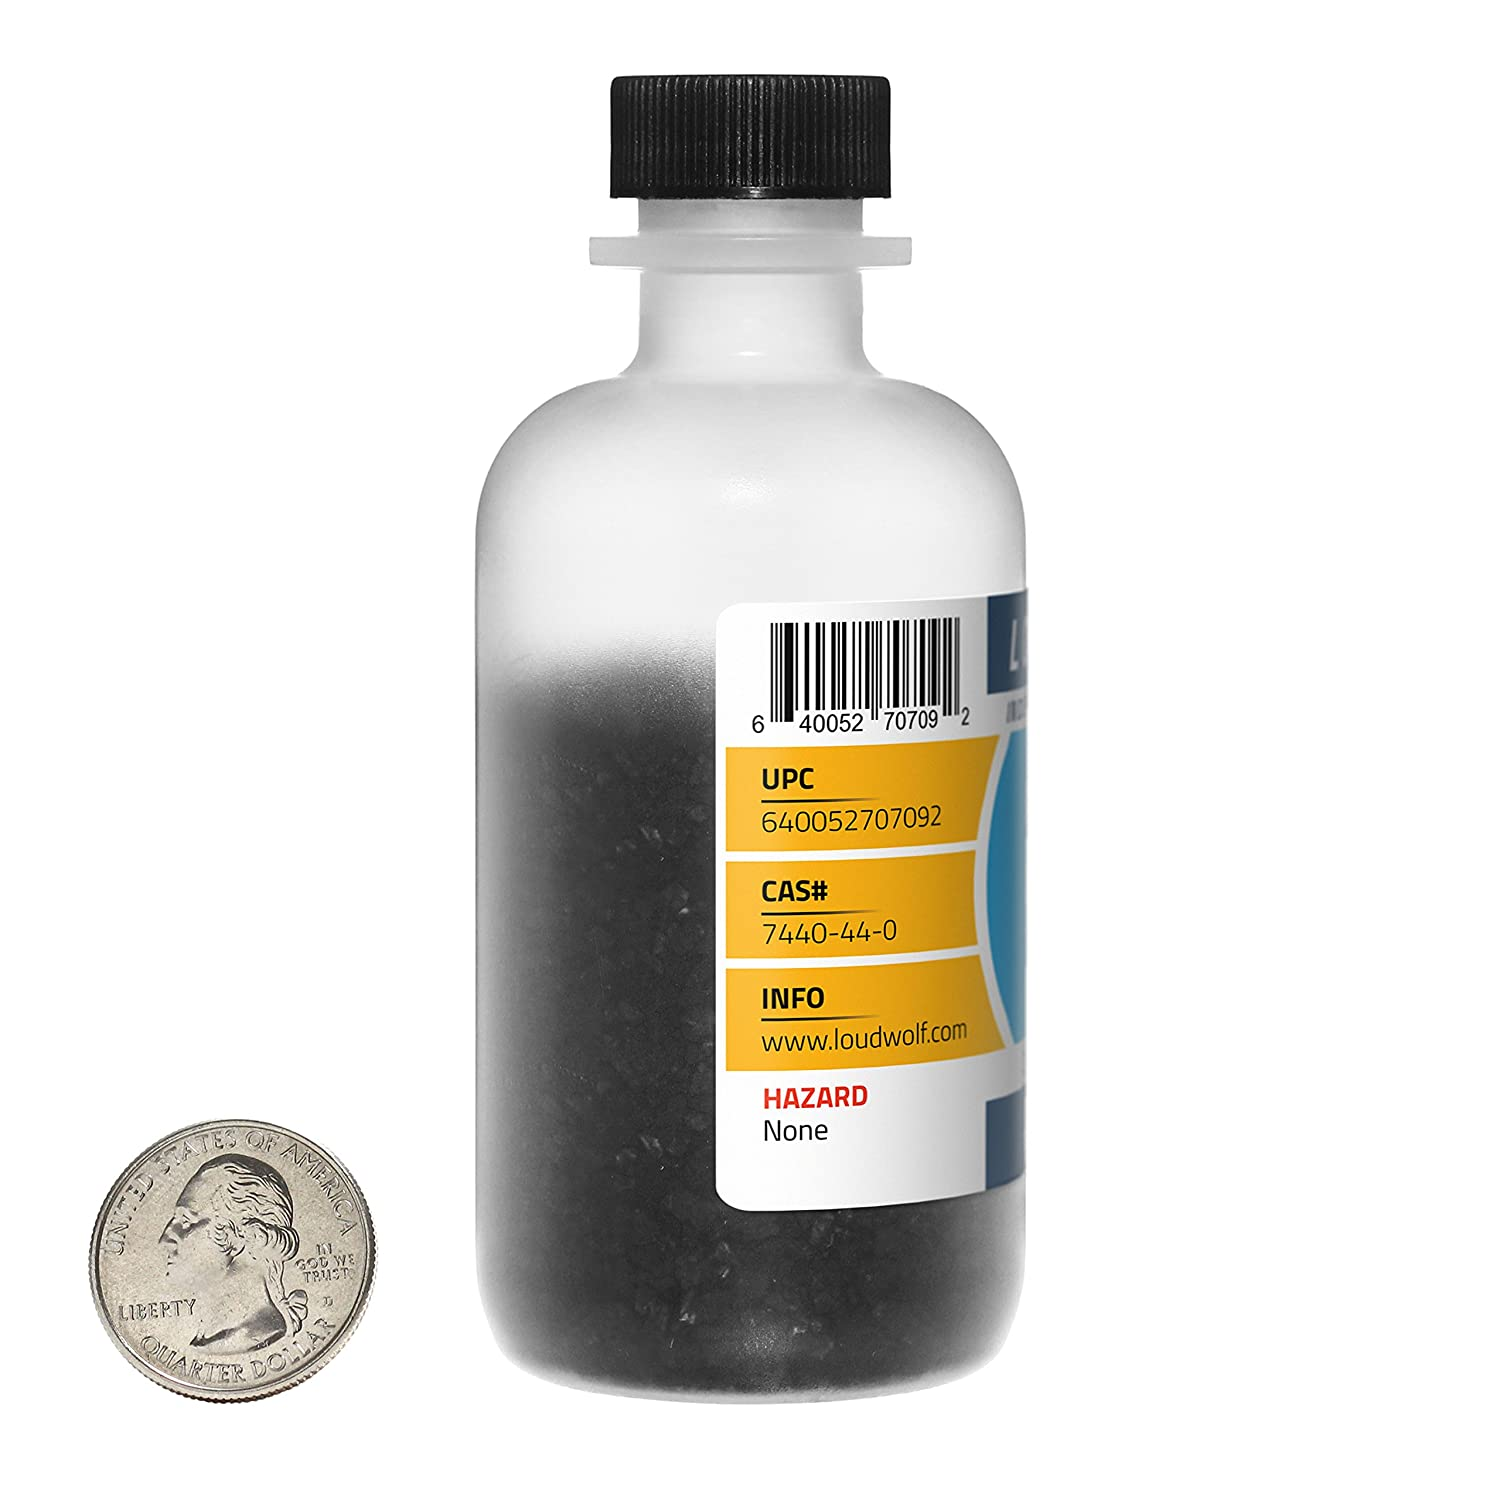 Amazon.com: Activated Charcoal / Course Granules / 2 Ounces / 100% Pure /  Food Grade / SHIPS FAST FROM USA: Home Improvement